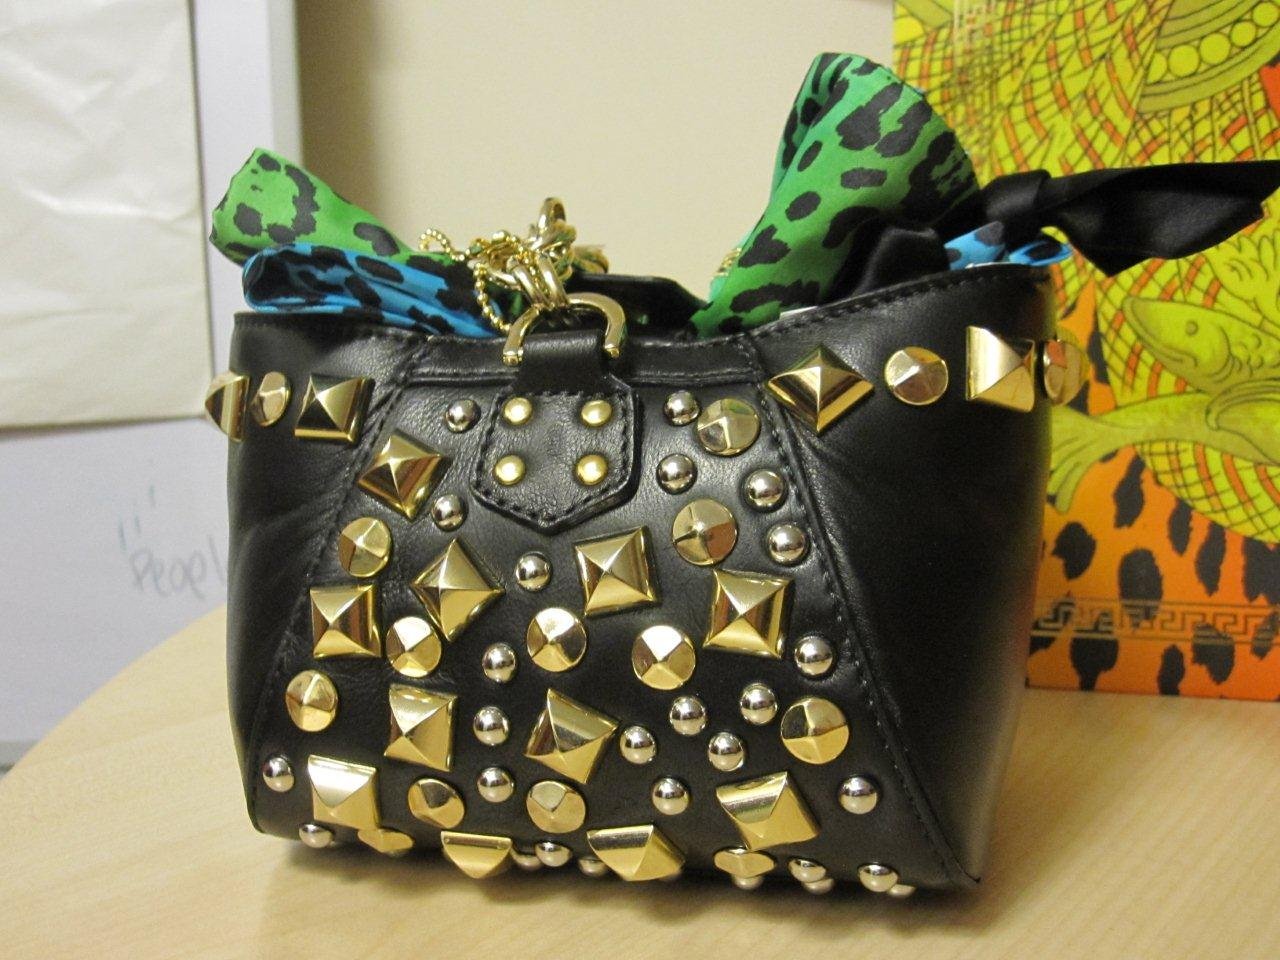 0dd271c1dedb Versace at H M bag with gold studs - Pose83